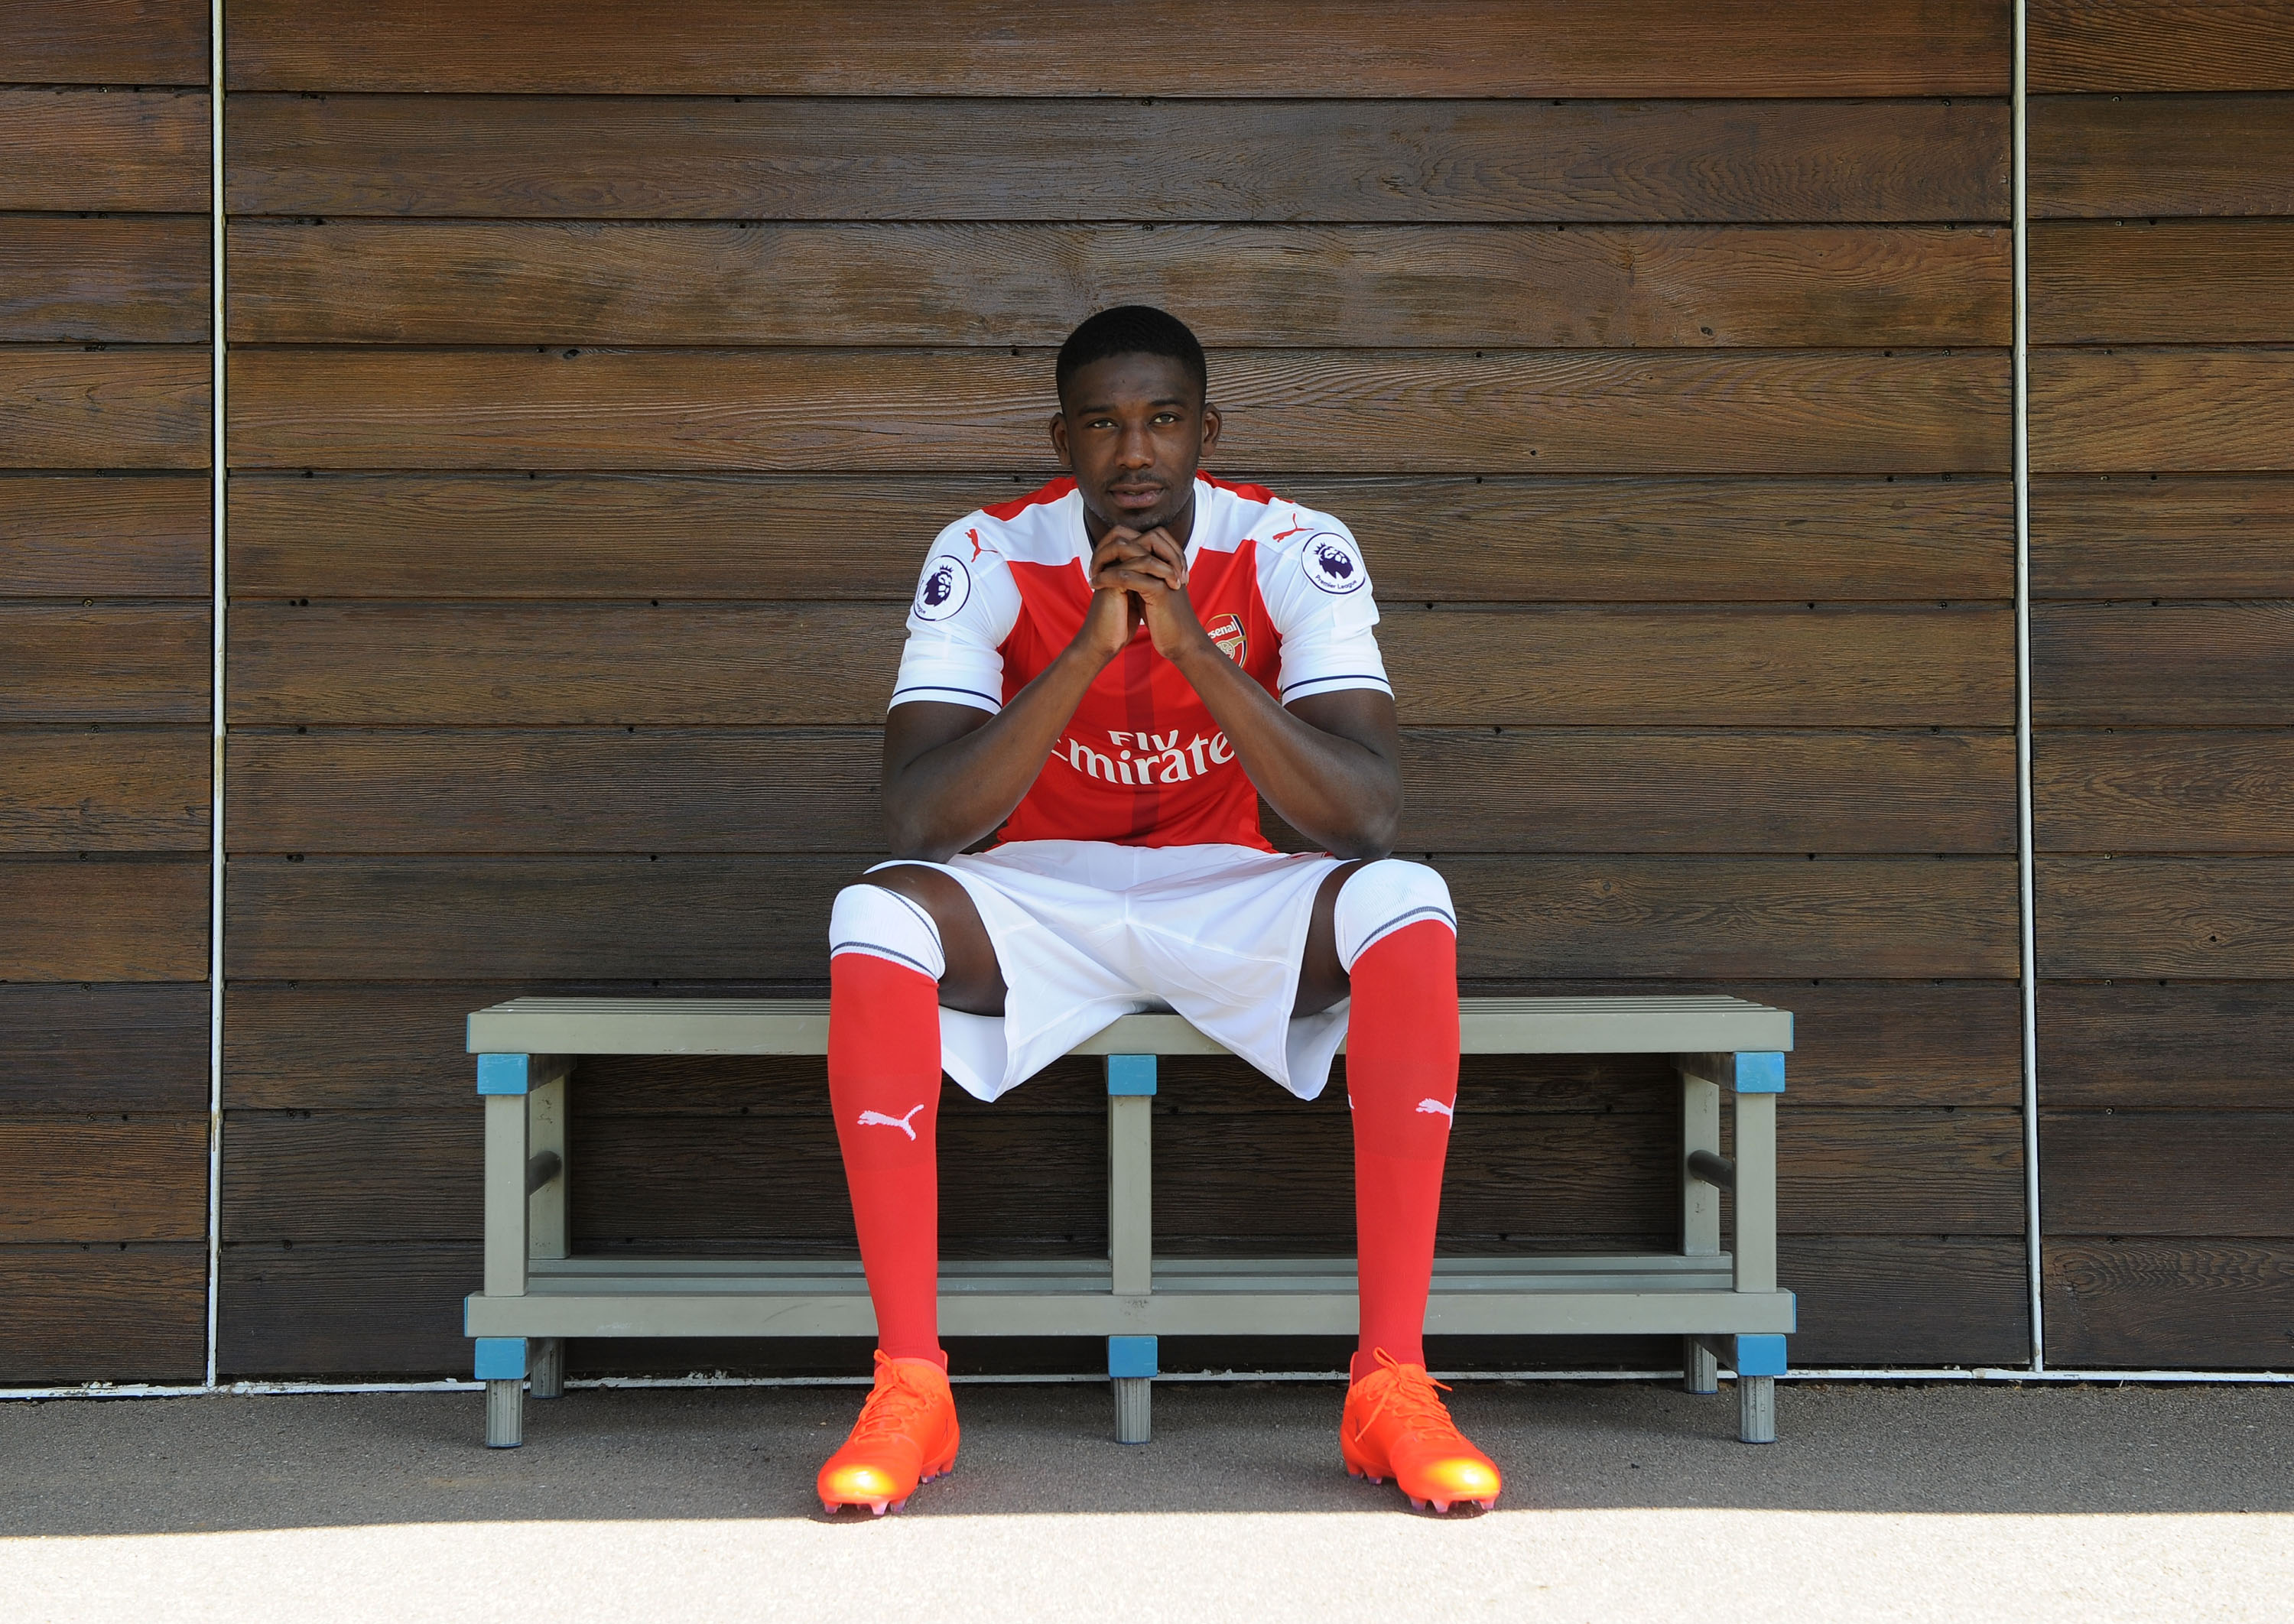 Arsene Wenger reveals Arsenal star Yaya Sanogo has calf injury but can't reveal 'confidential' details